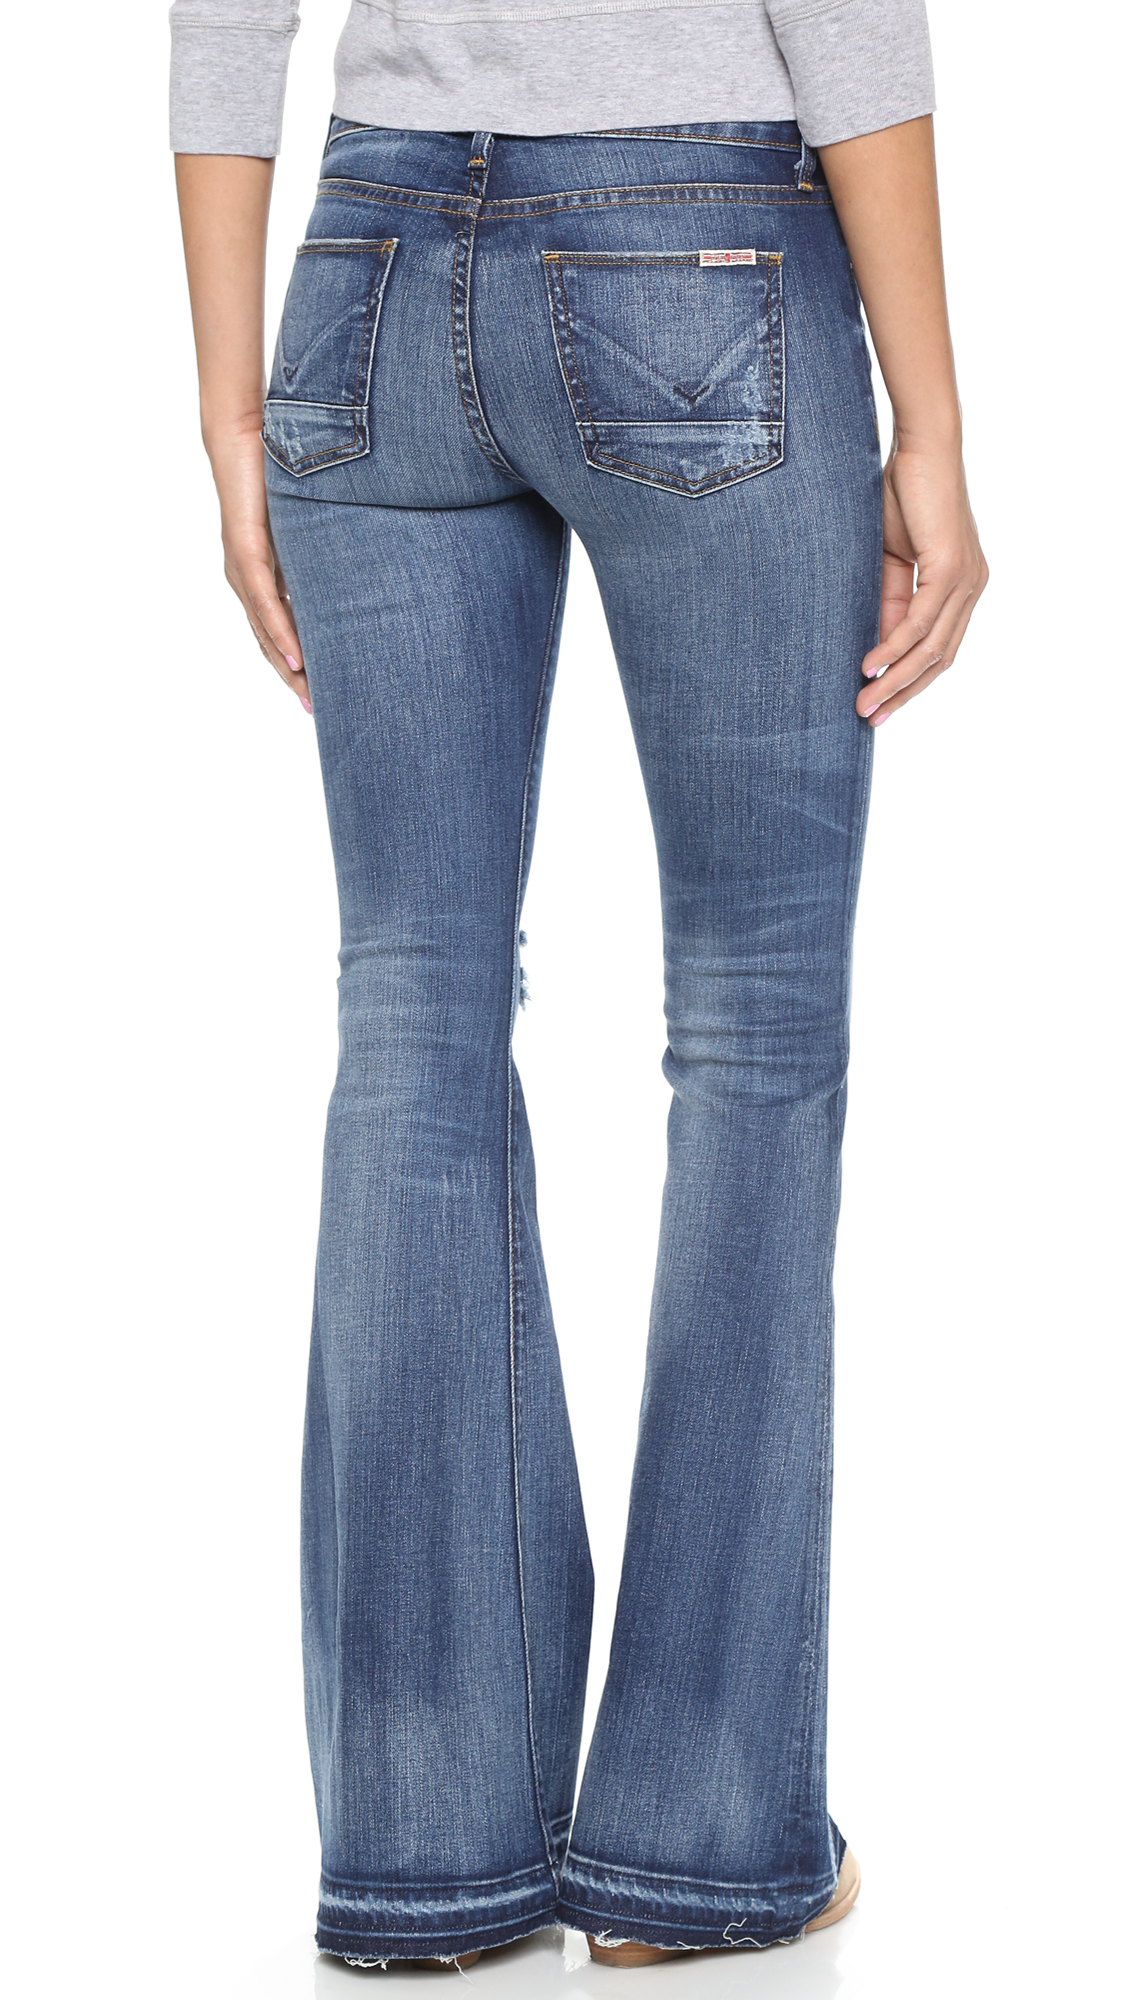 Hudson jeans Mia Flare Jeans - Beaudry in Blue | Lyst